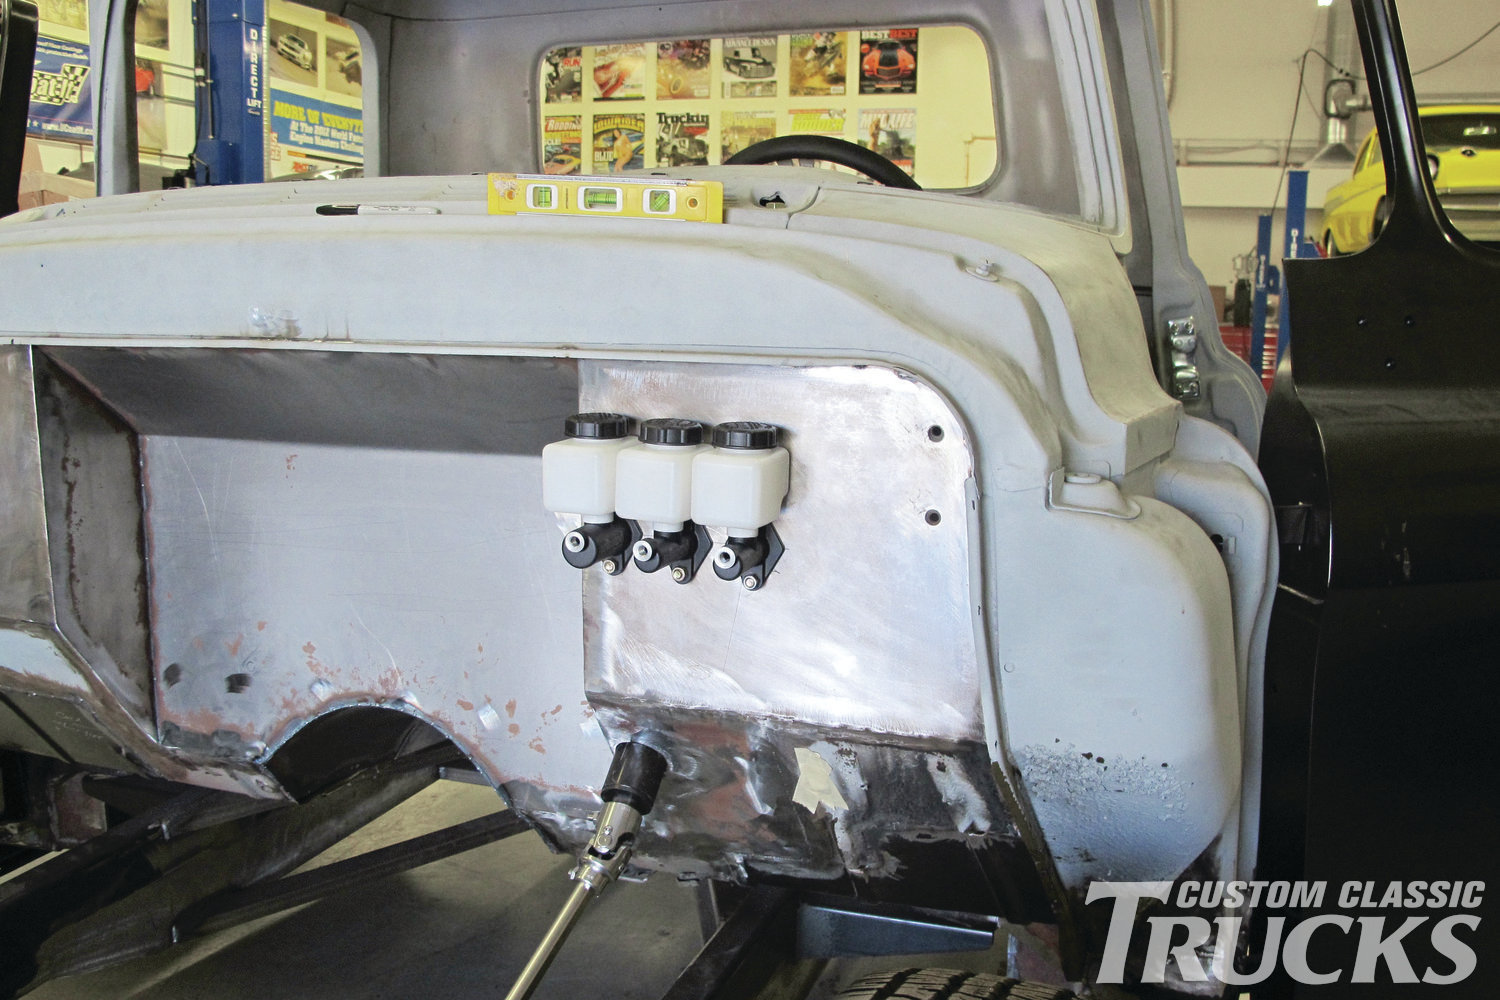 1. Jason Scudellari modified his 1956 Chevy pickup's firewall to accommodate an LS engine that will be slid back in the chassis, Wilwood master cylinders and swing pedals, and a Flaming River steering column.